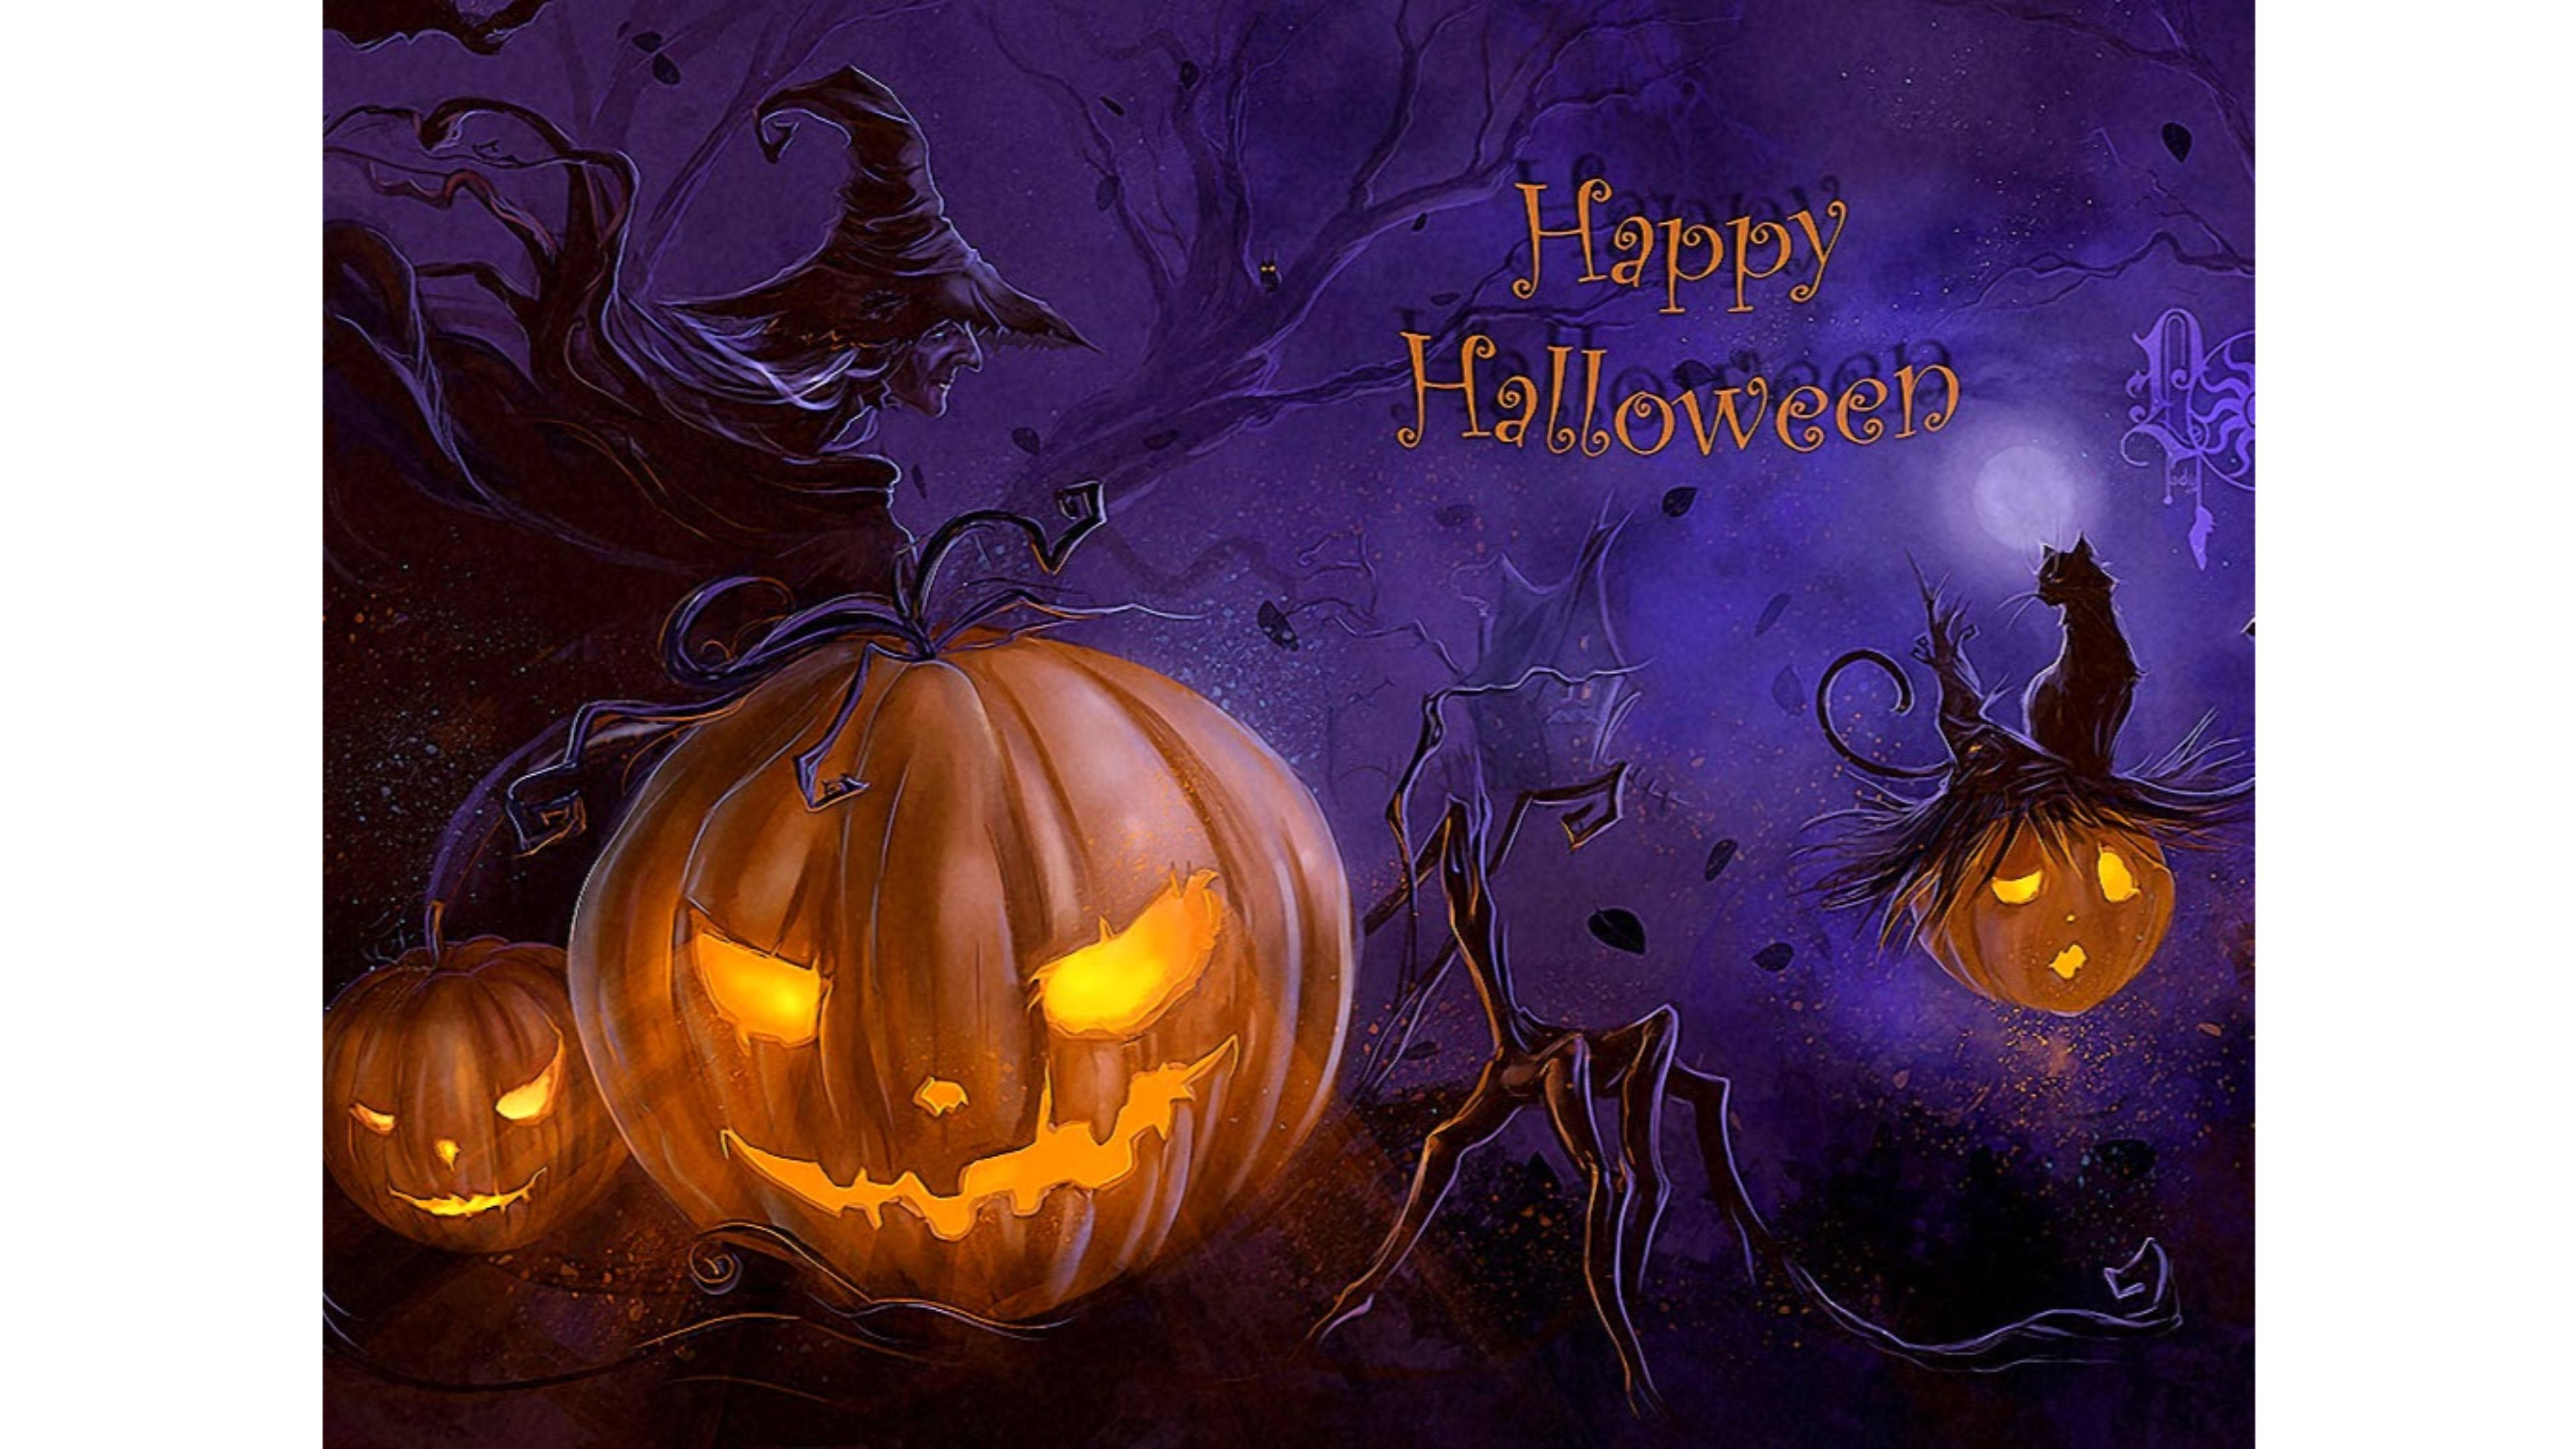 3840x2160 Free download New 2017 Happy Halloween 4K Wallpapers 4K ...